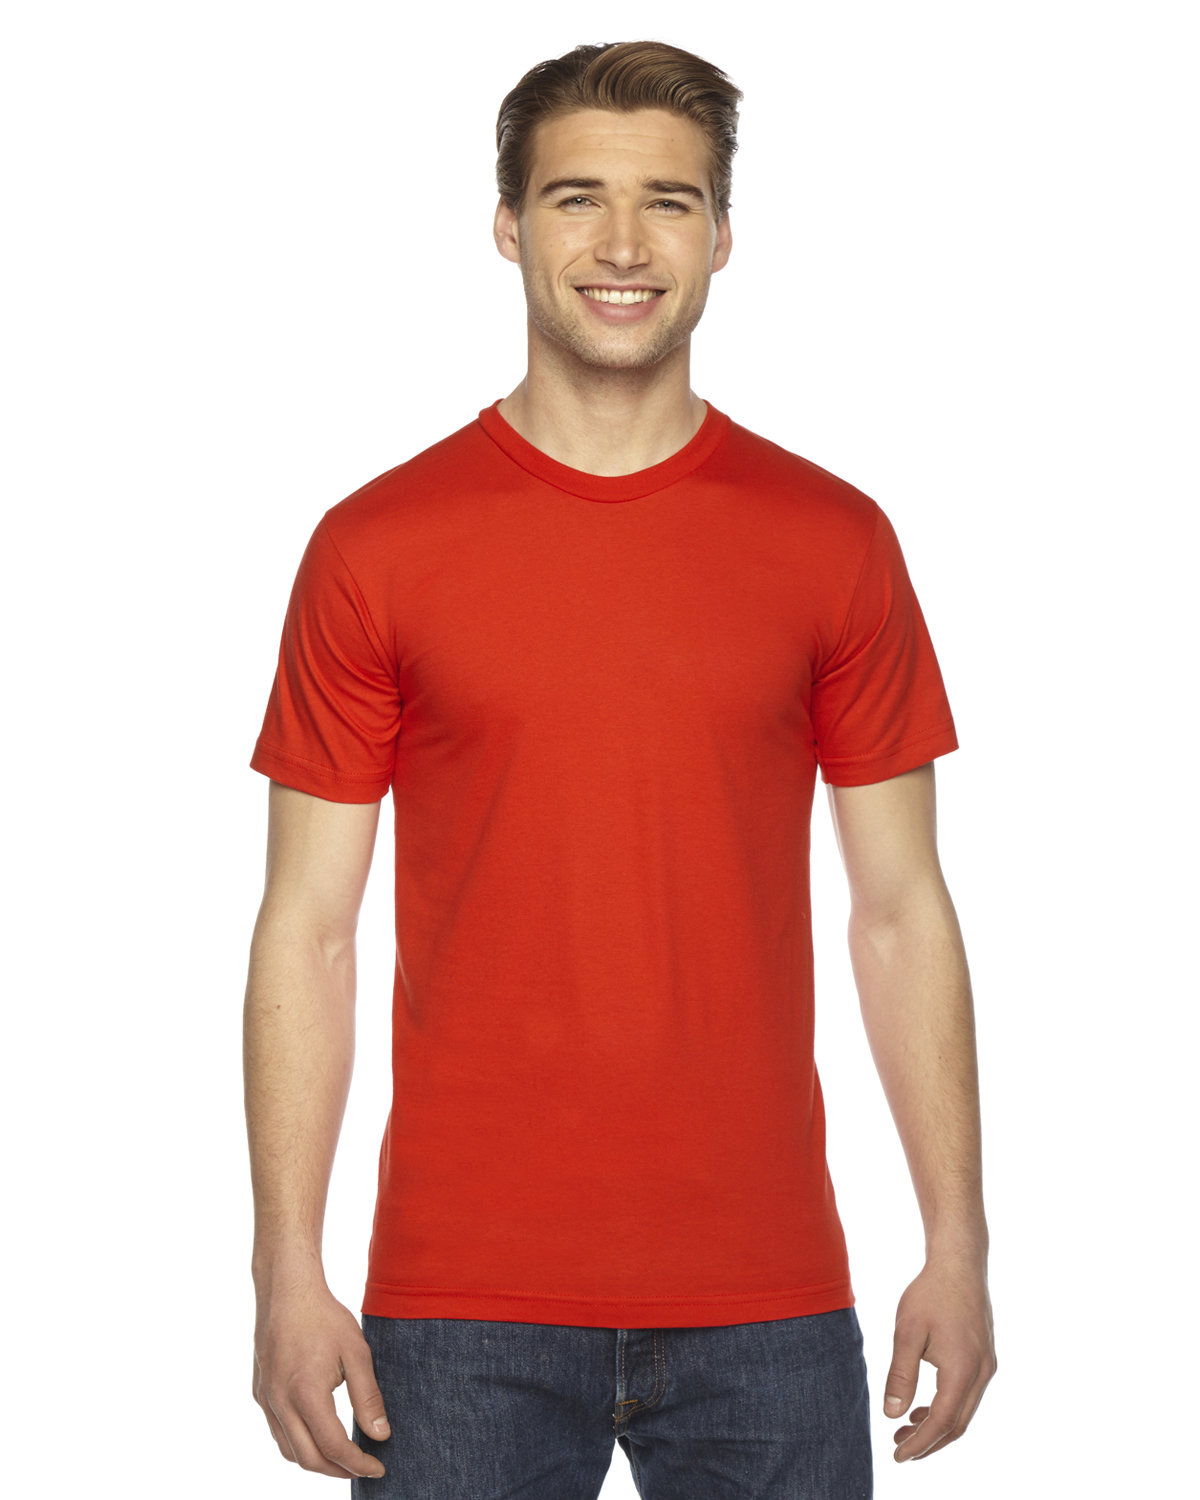 American Apparel Unisex Fine Jersey USA Made T-Shirt ORANGE